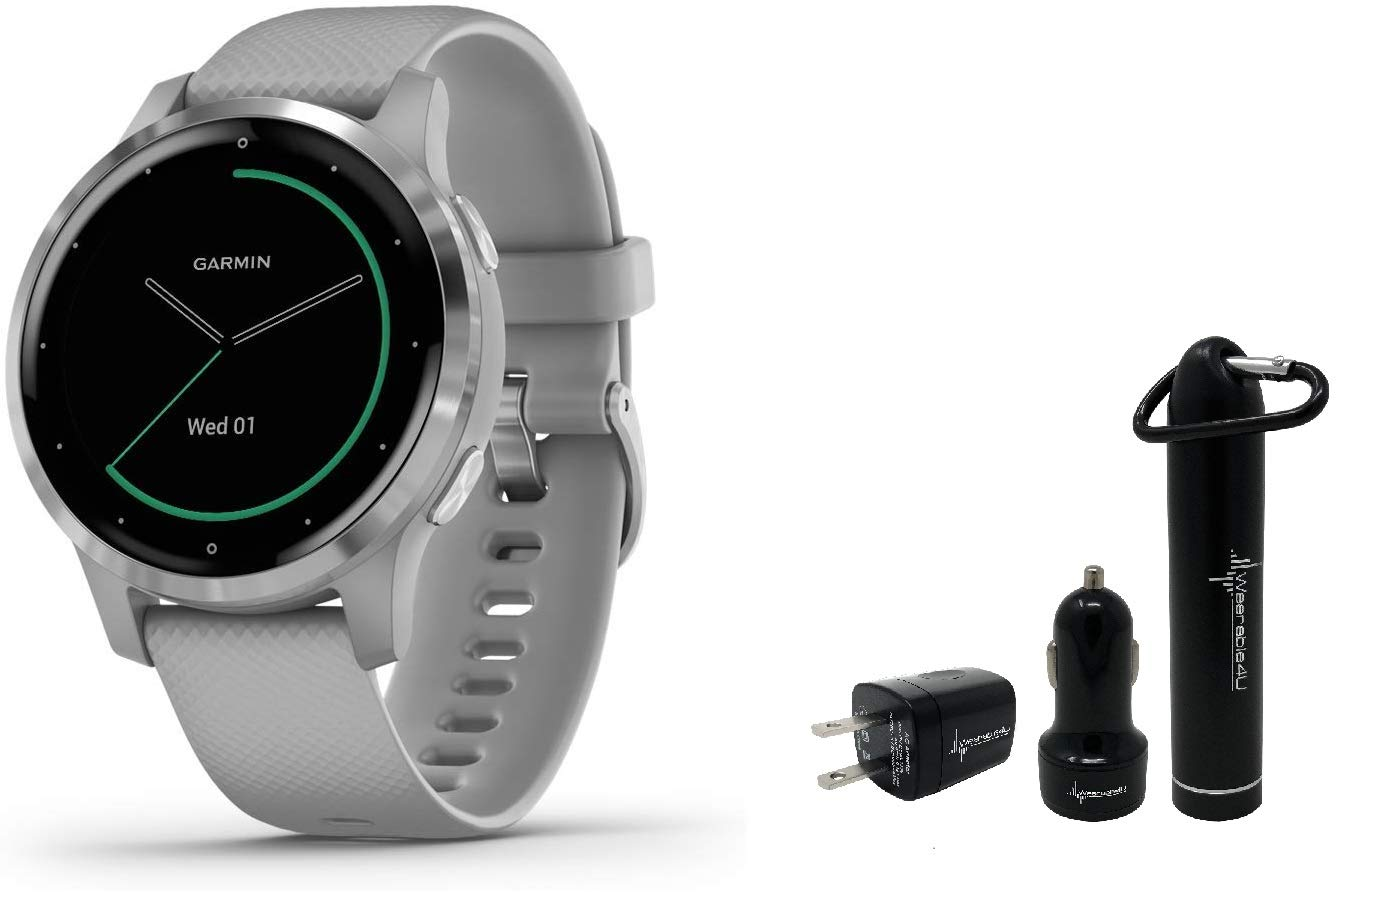 Garmin Vivoactive 4S GPS Smartwatch and Wearable4U Power Pack Bundle (Powder Gray/Silver)